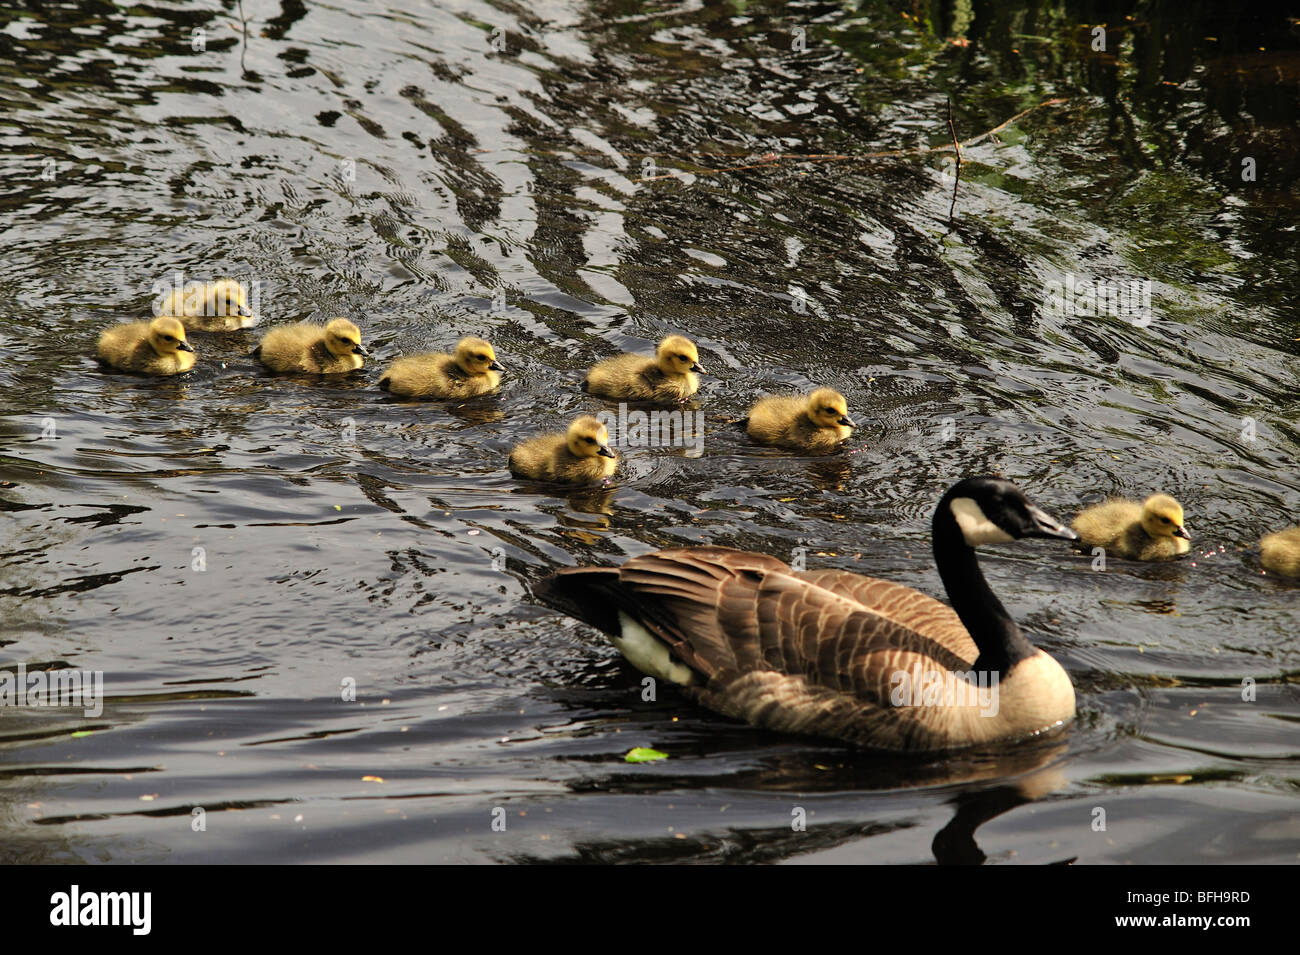 Canada goose (Branta canadensis) with goslings, Stanley Park, Vancouver, British Columbia, Canada - Stock Image